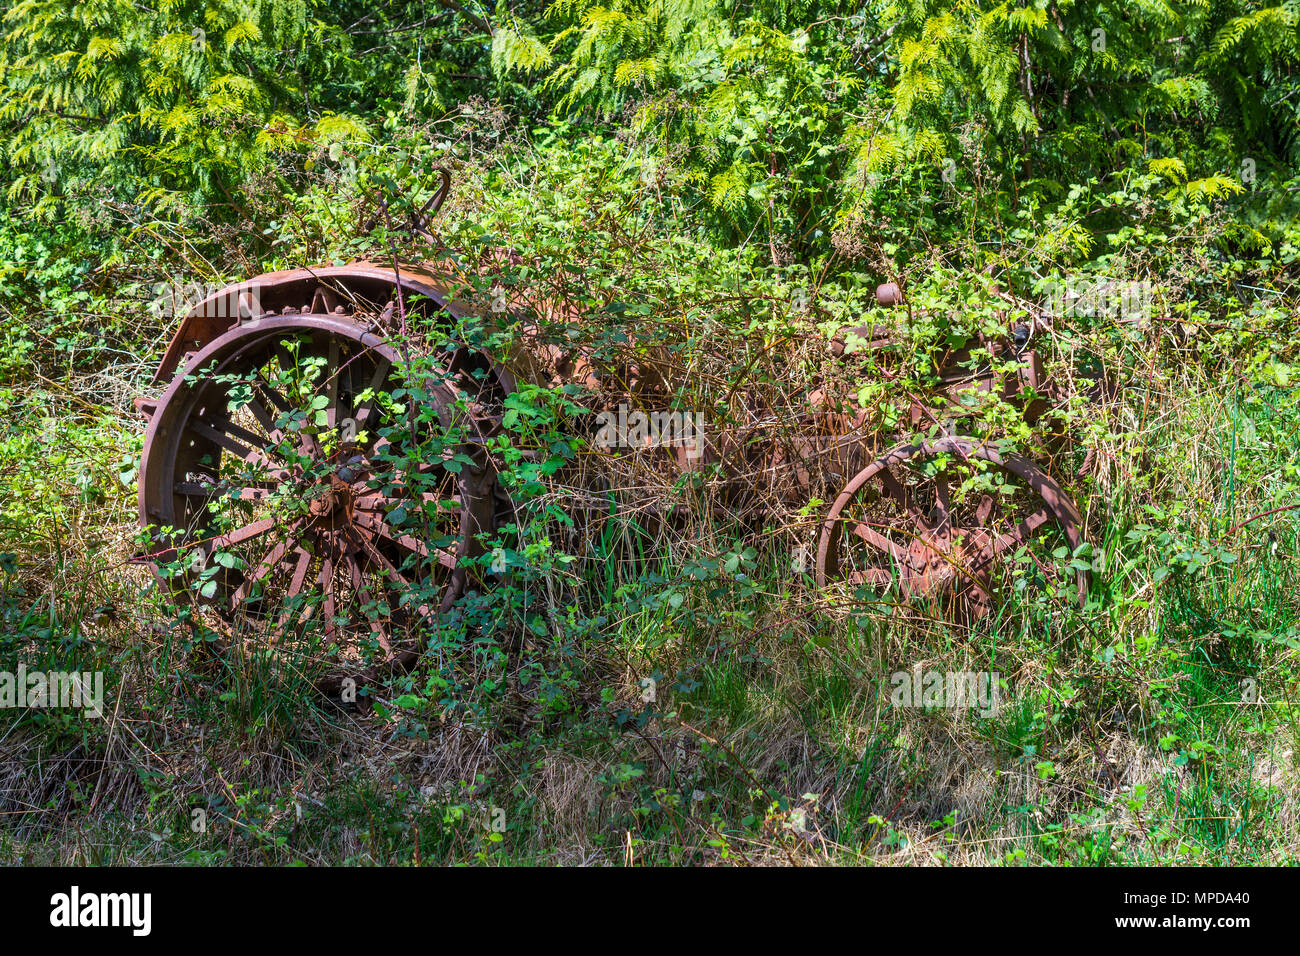 Rusty vintage Fordson tractor, Hornby Island, BC, Canada. - Stock Image